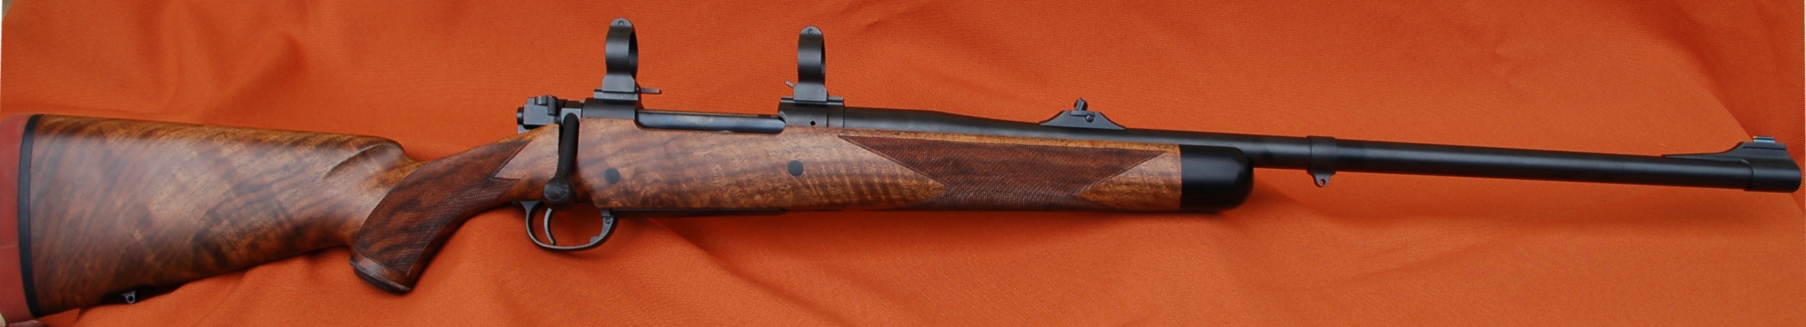 M1917 Enfield sporting rifle Ed LaPour